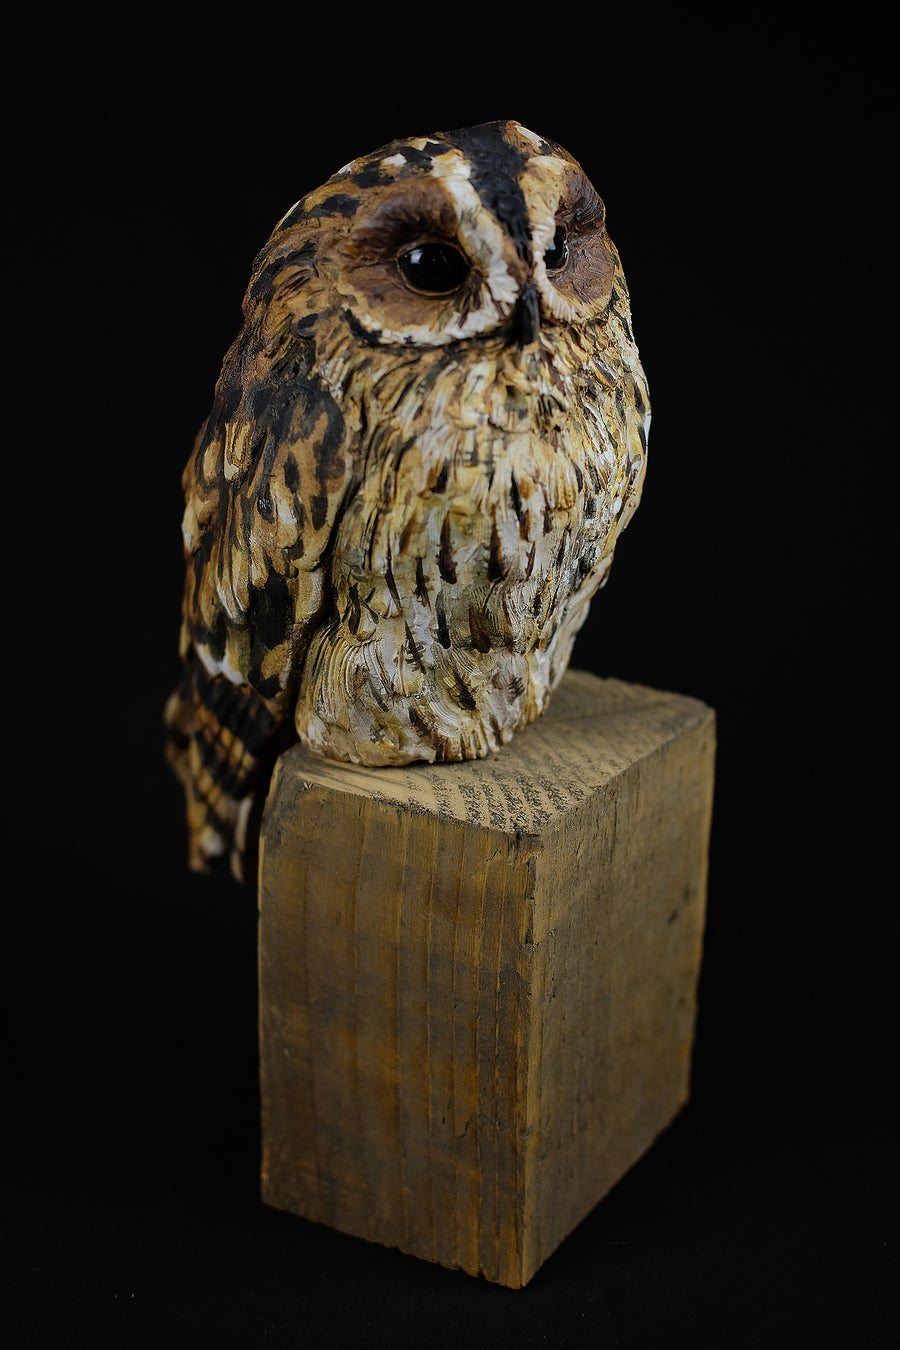 Image of KAREN FAWCETT 'TAWNY OWL' CERAMIC SCULPTURE